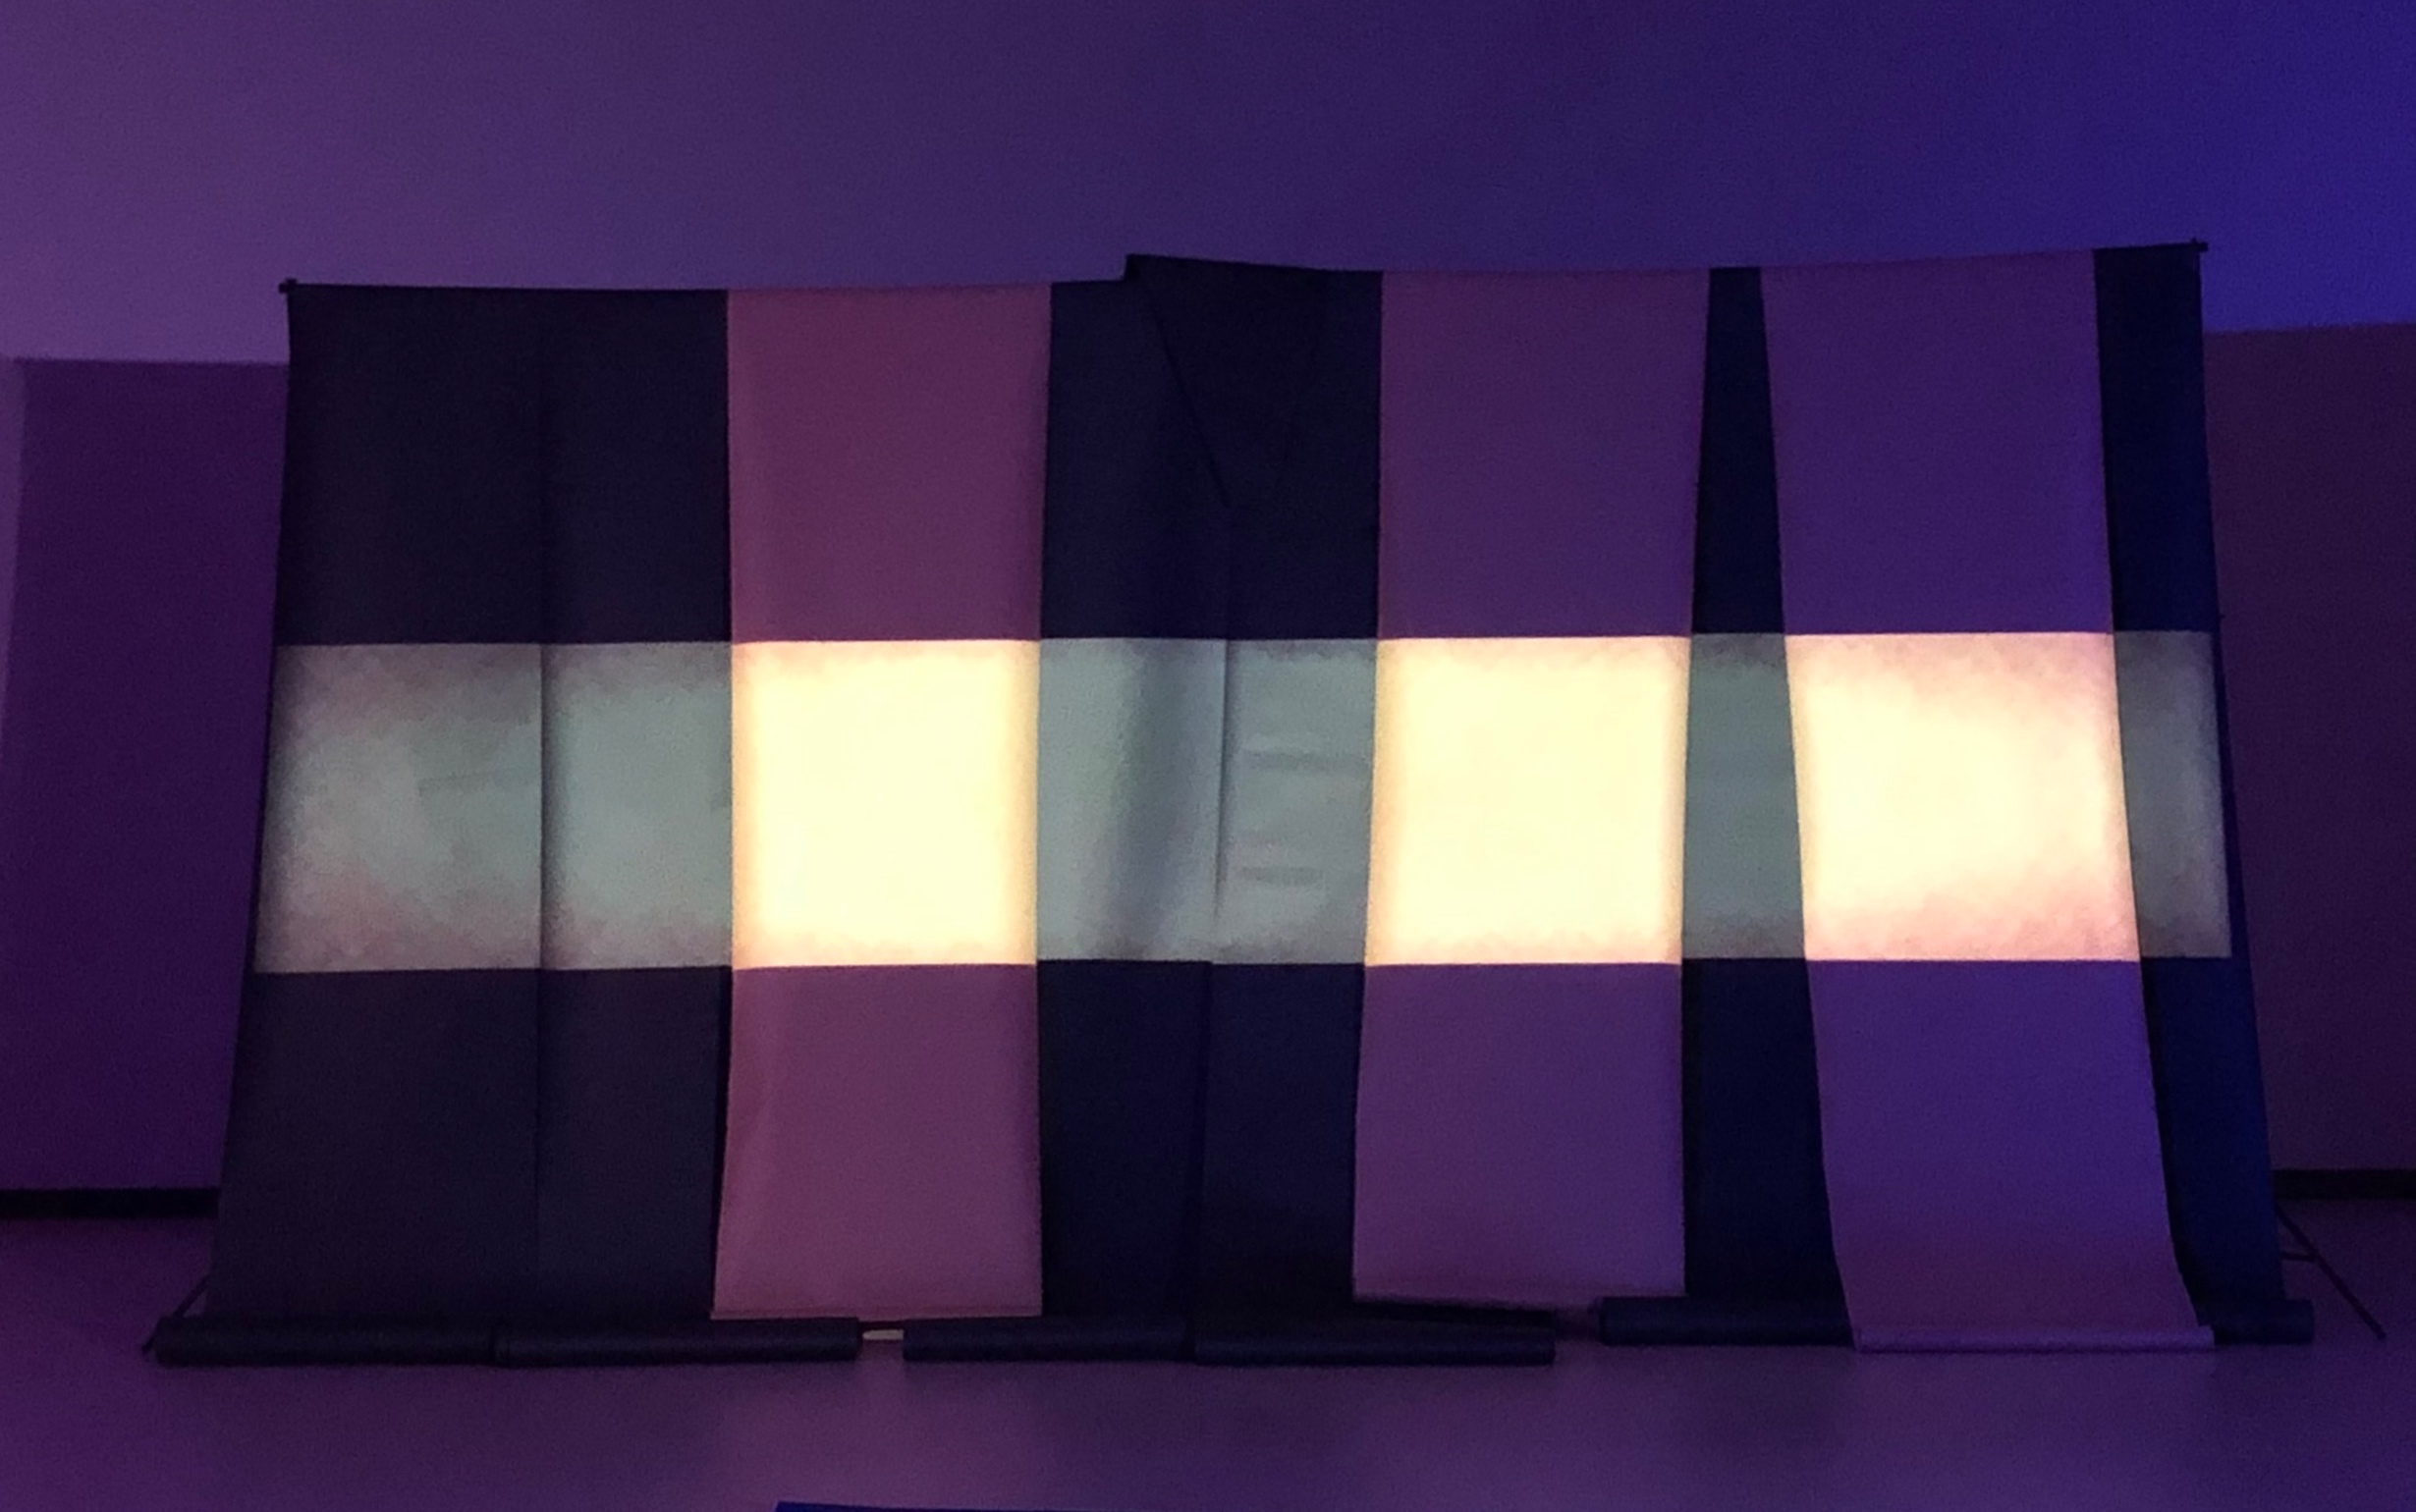 Set Piece / Two Row  Film from Simas'  Weave  - photo by rosy simas